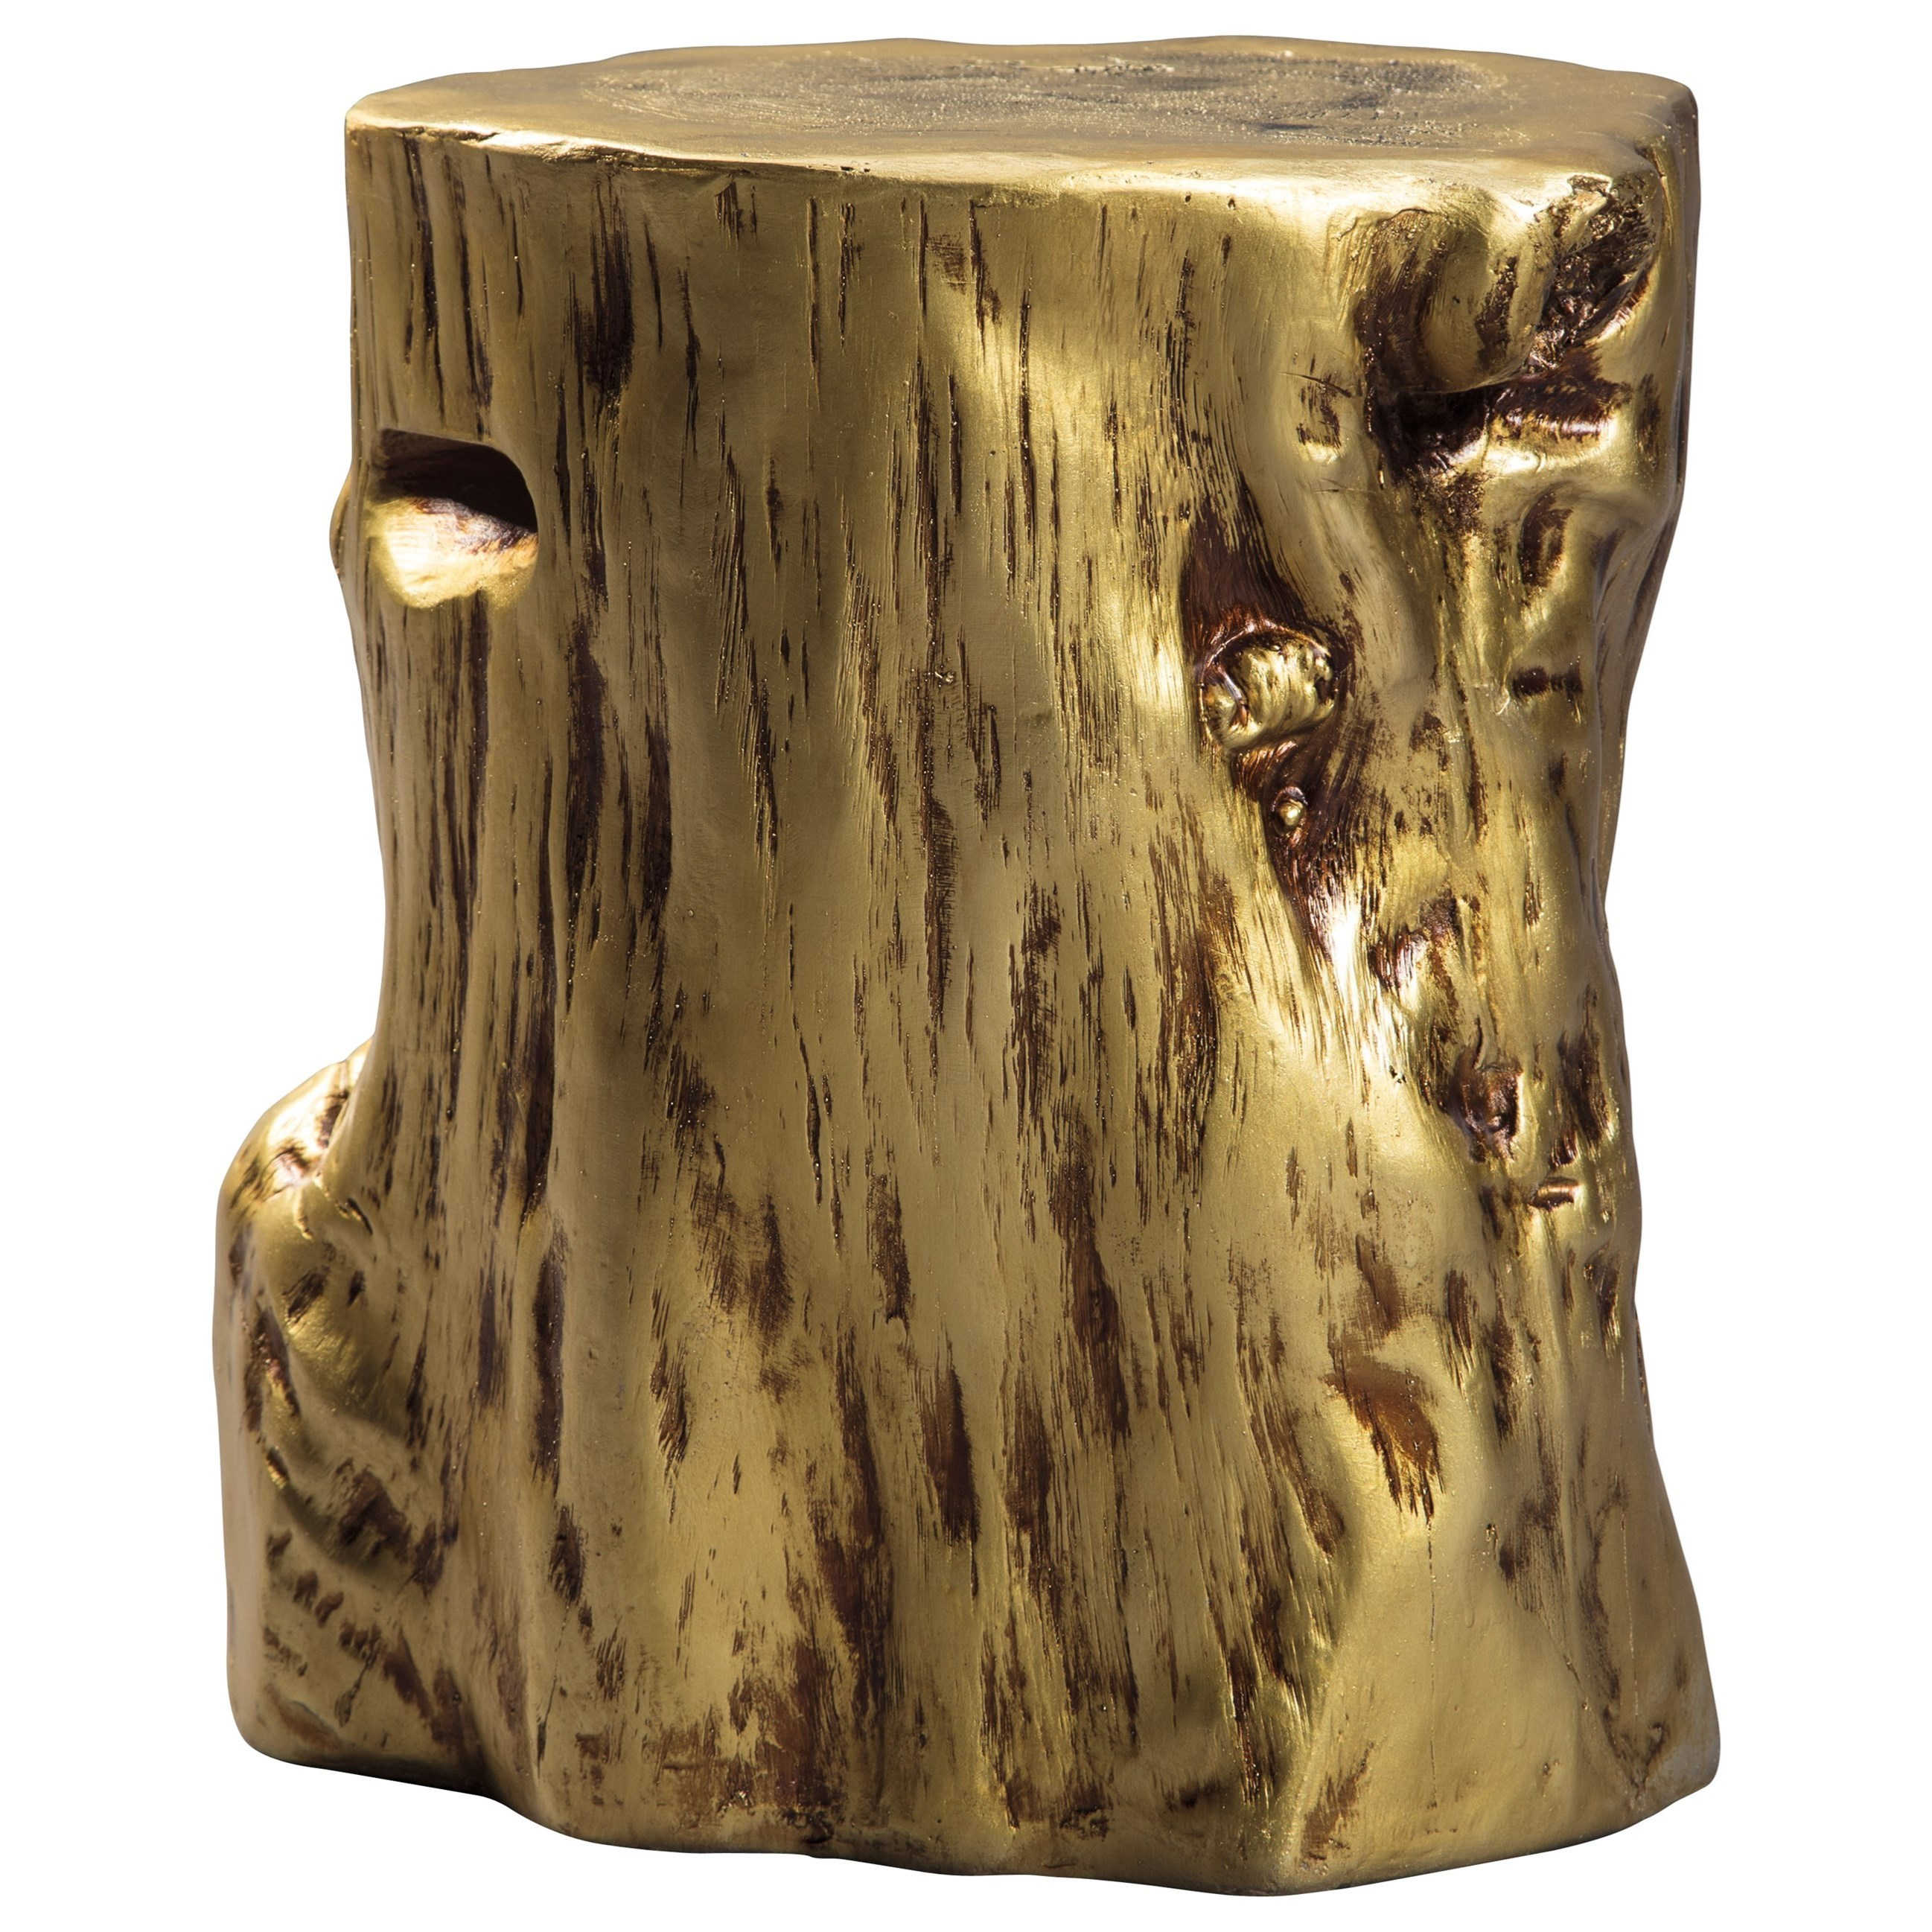 signature design ashley majaci gold tree stump accent table products color wood cherry nightstand touch lamps entry console metal small quilted placemats painted nightstands cream